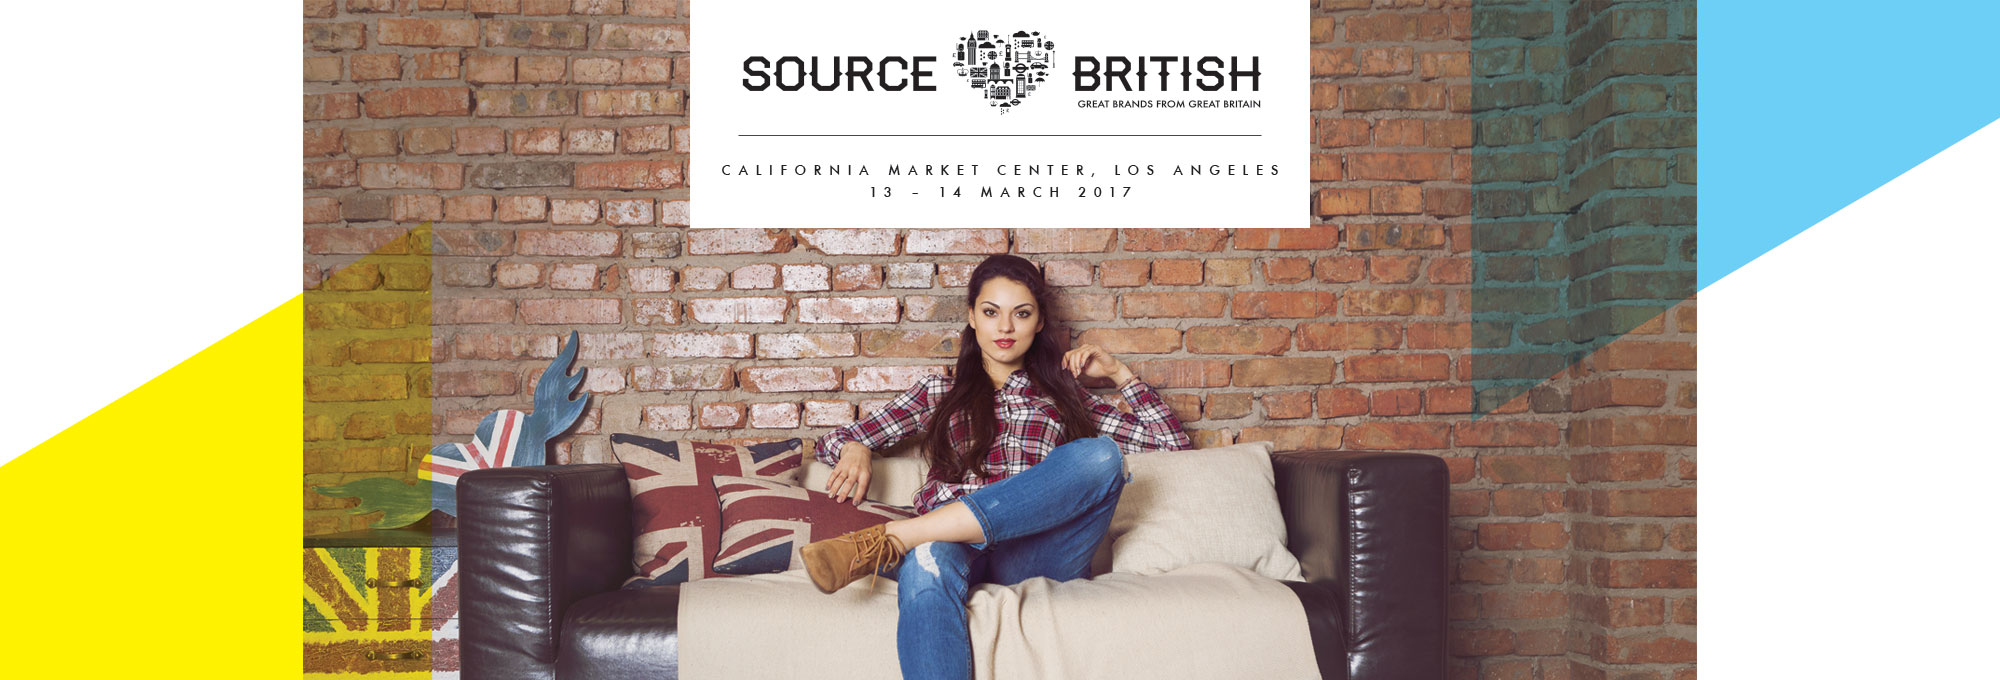 NEW TRADESHOW FOR BRITISH BRANDS TO EXPAND INTO THE U.S.